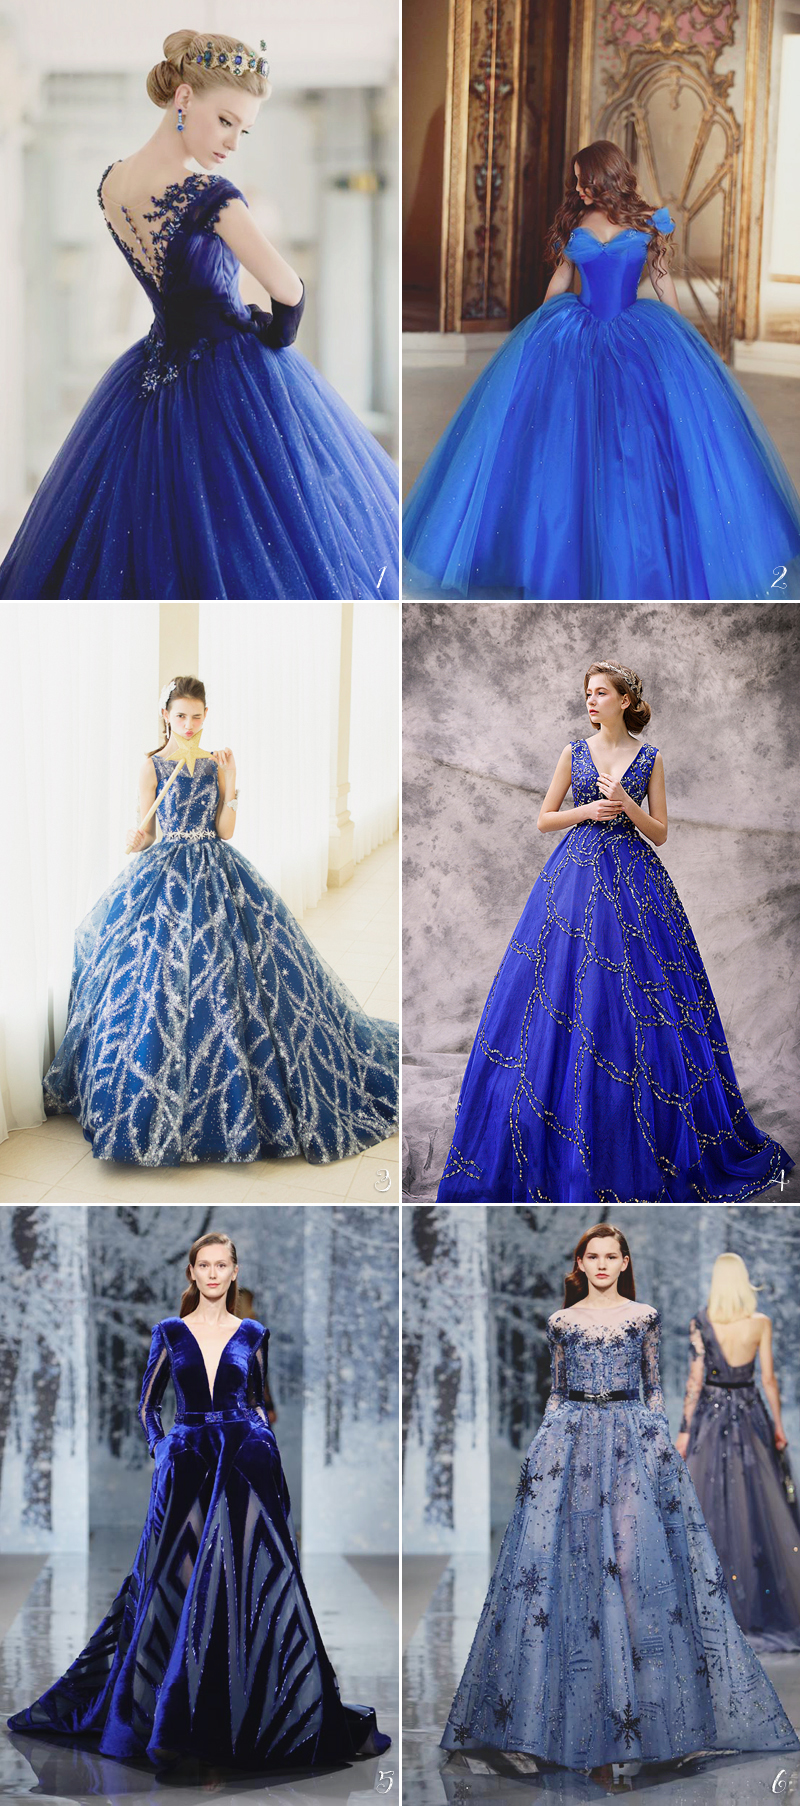 carming blue wedding gowns